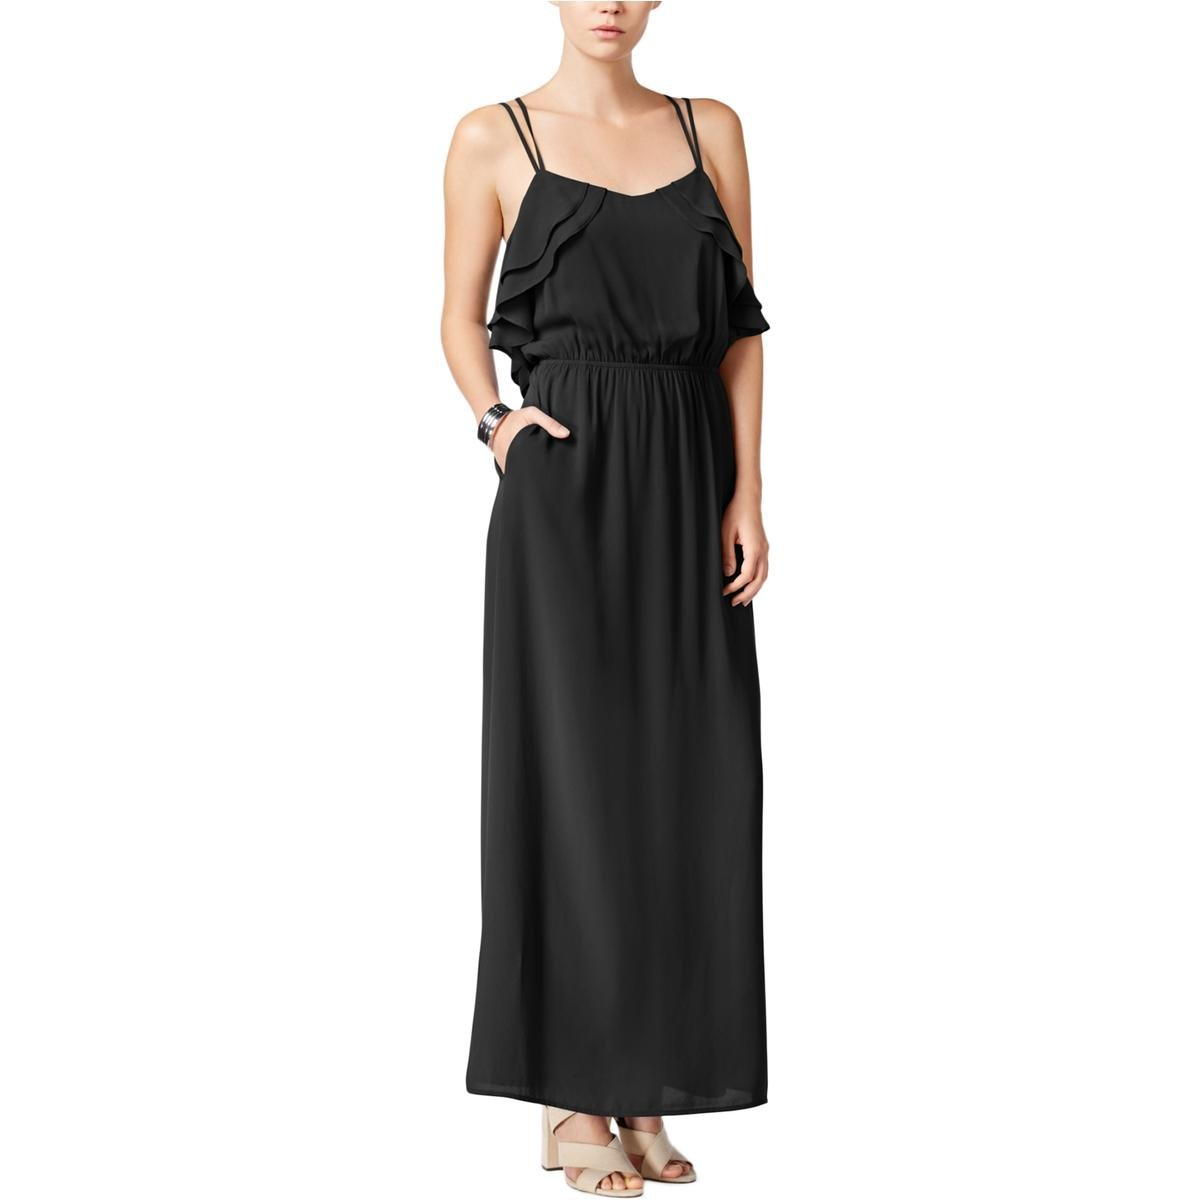 Bar Iii Ruffled Maxi Dress